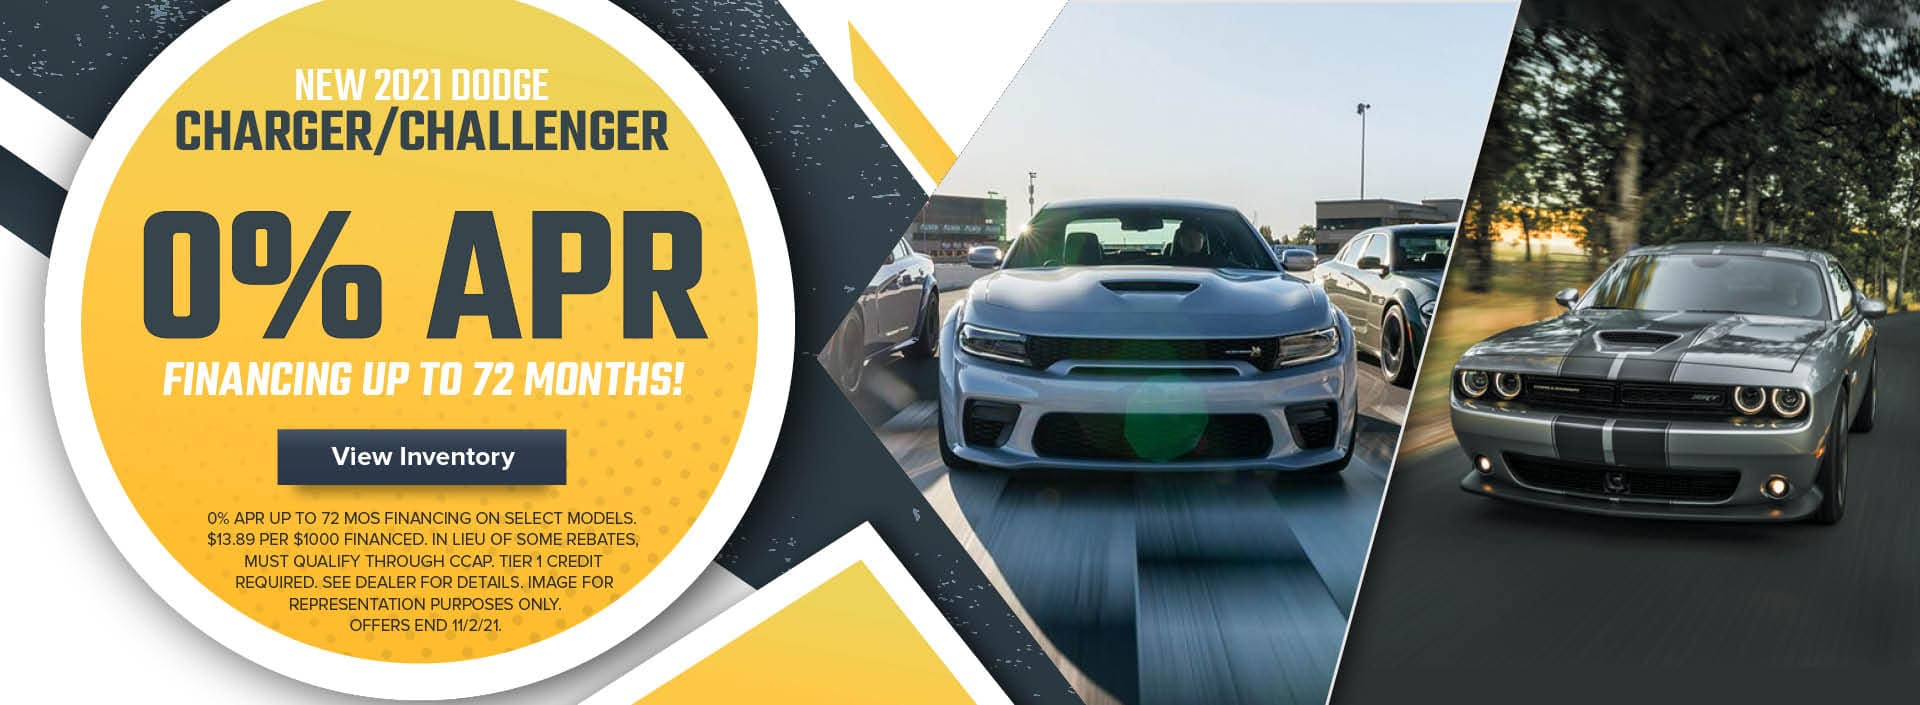 New 2021 Dodge Charger/Challenger